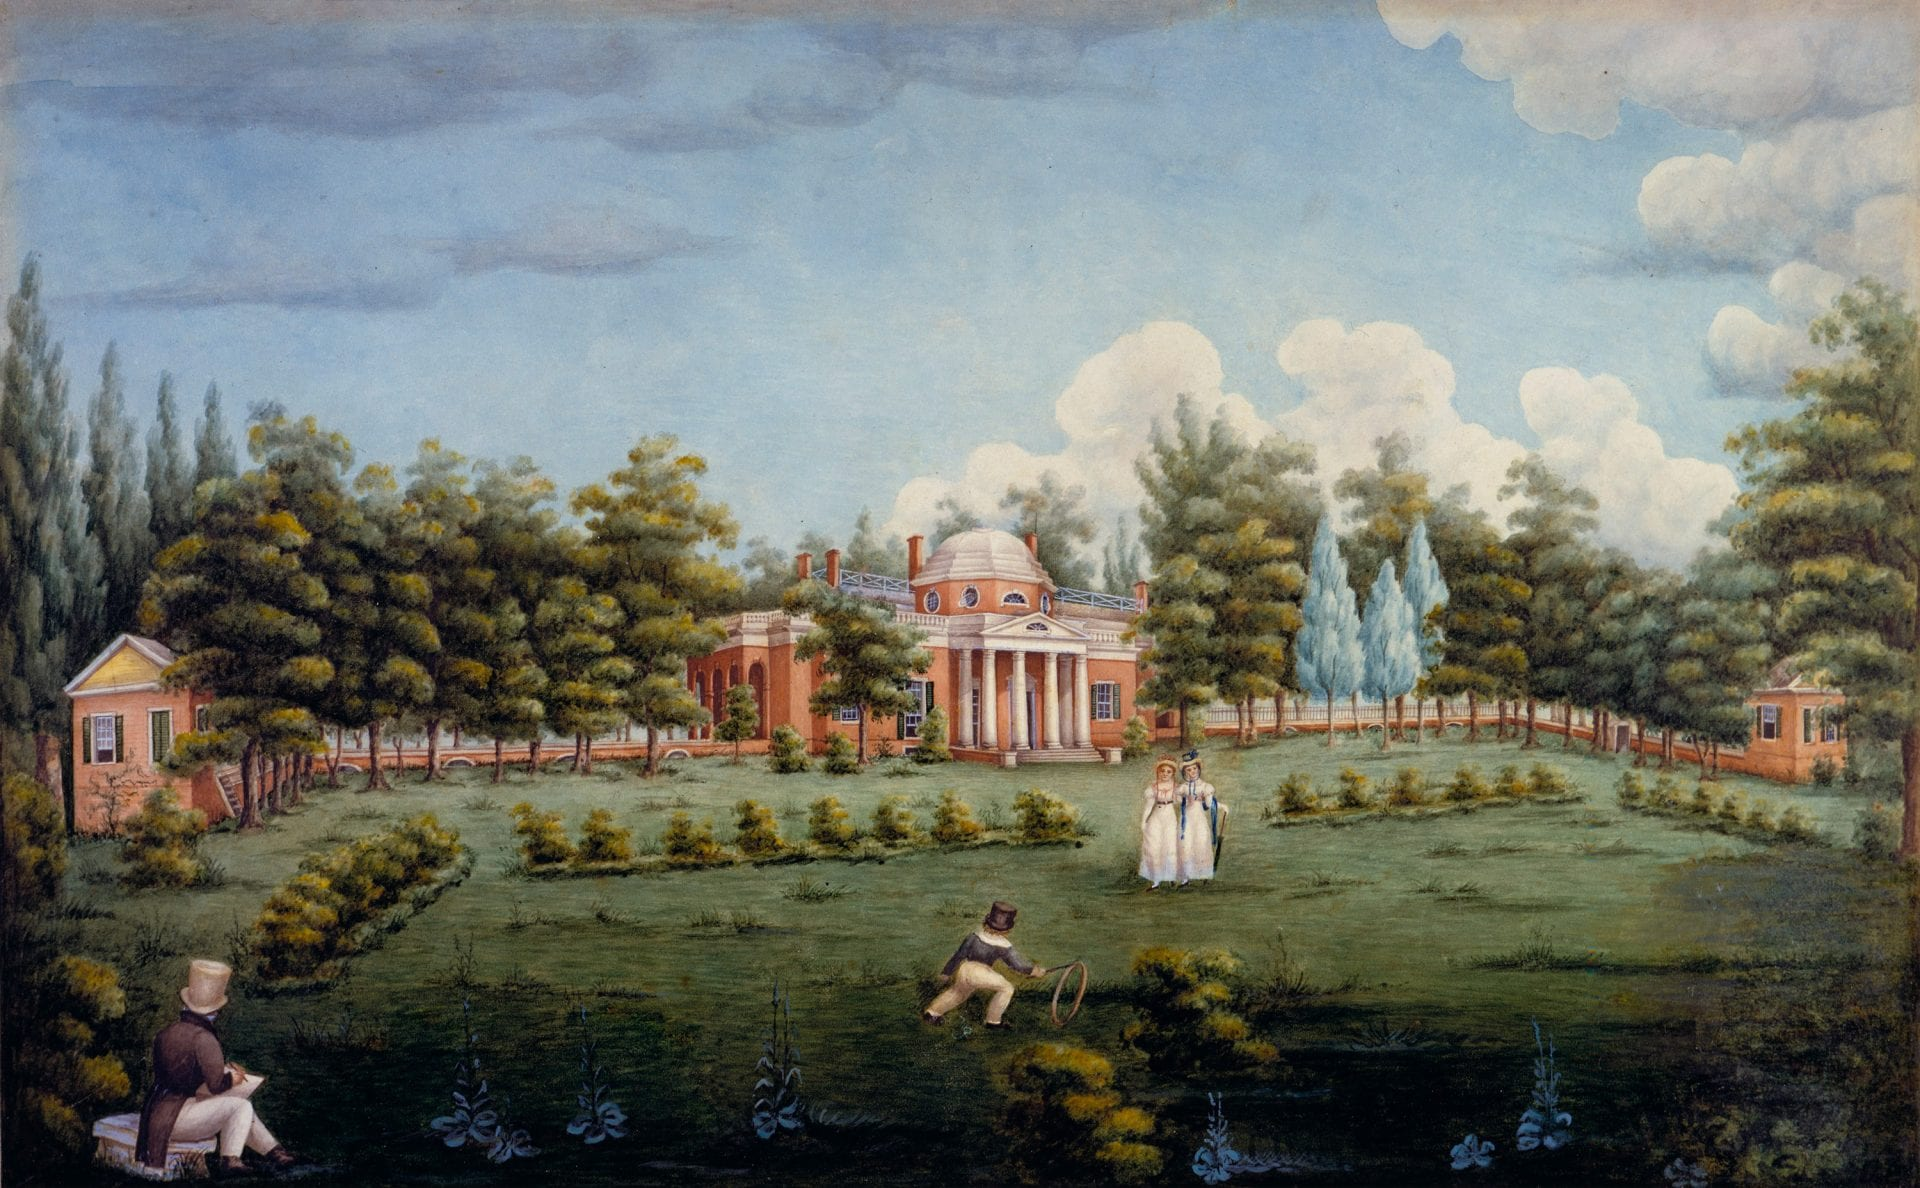 Water color painting of Thomas Jefferson's Monticello